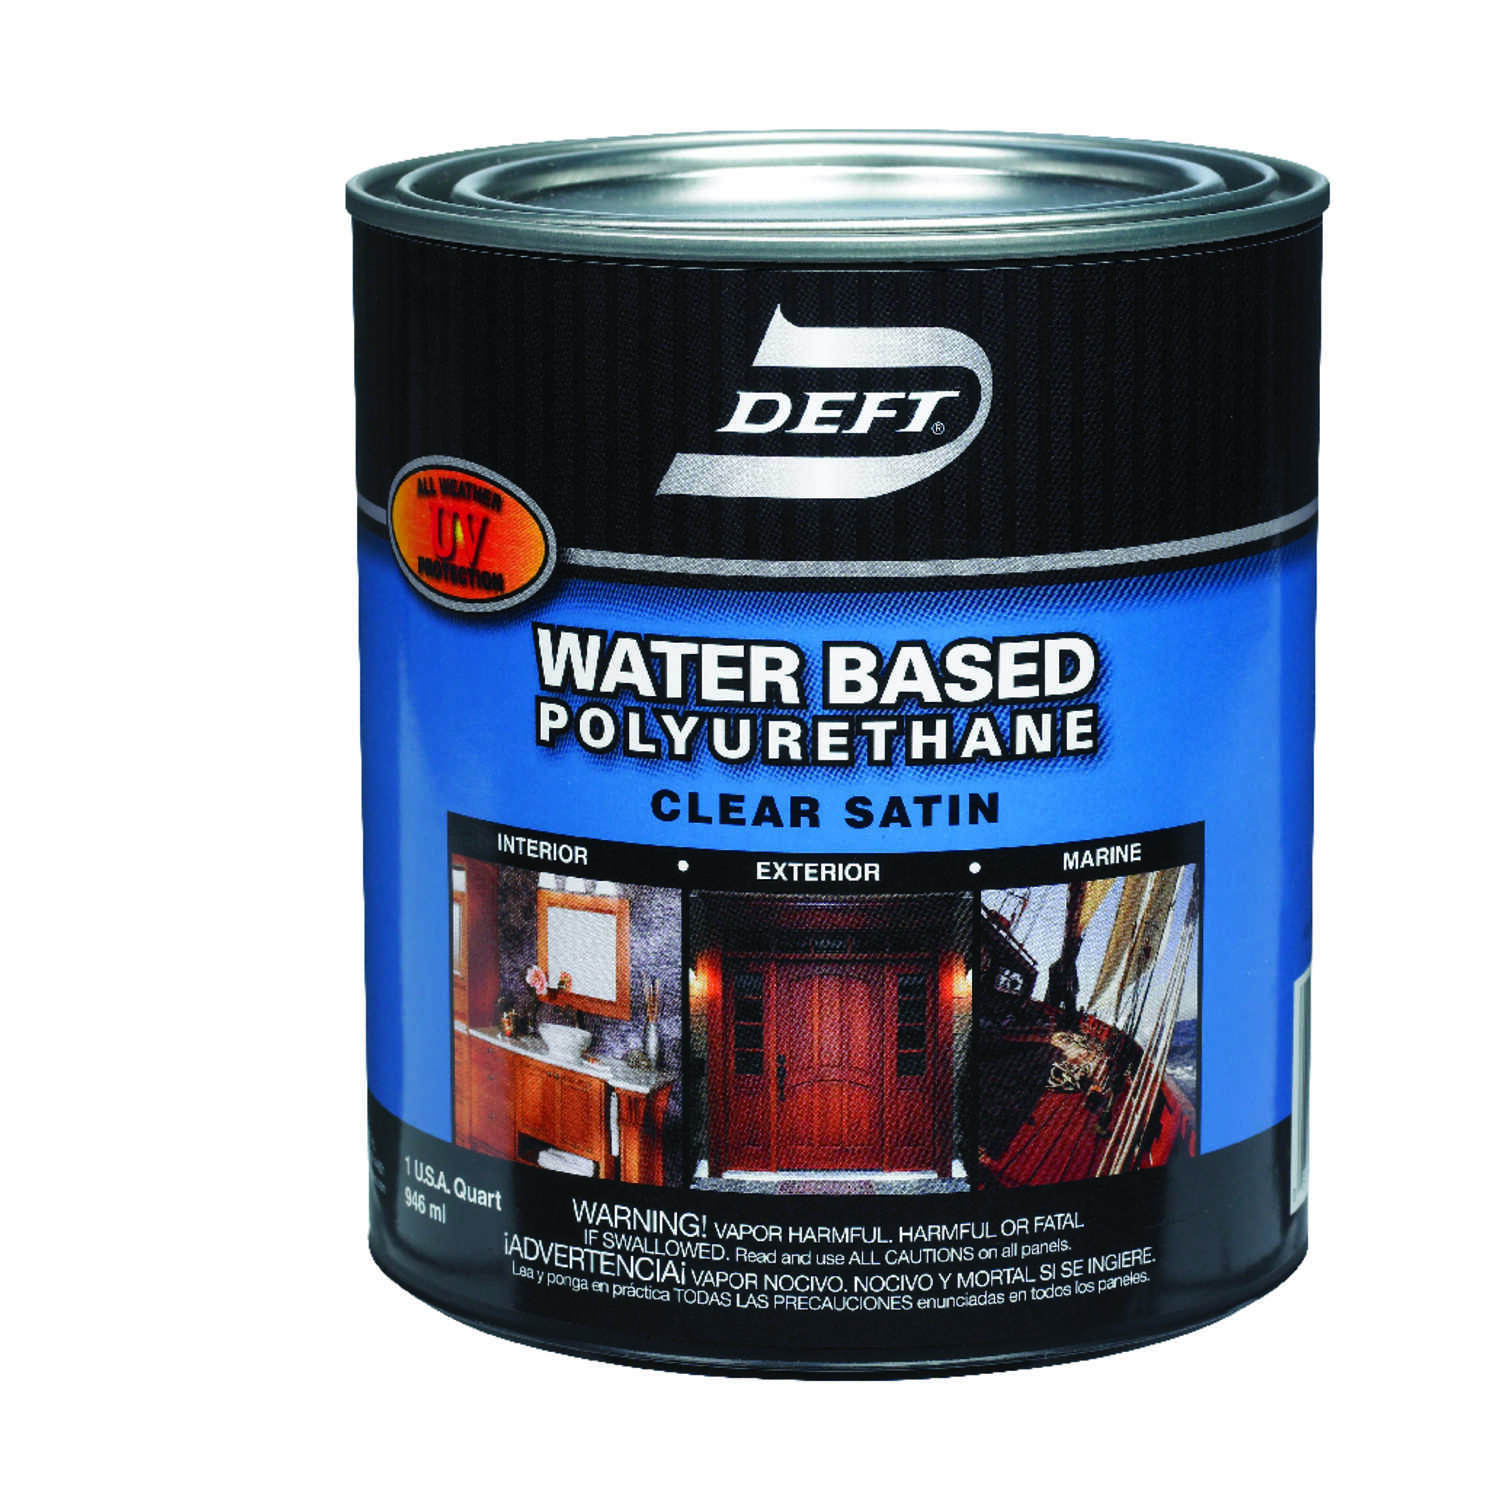 Deft  Water Based Polyurethane  Satin  Clear  Waterborne Wood Finish  1 qt.